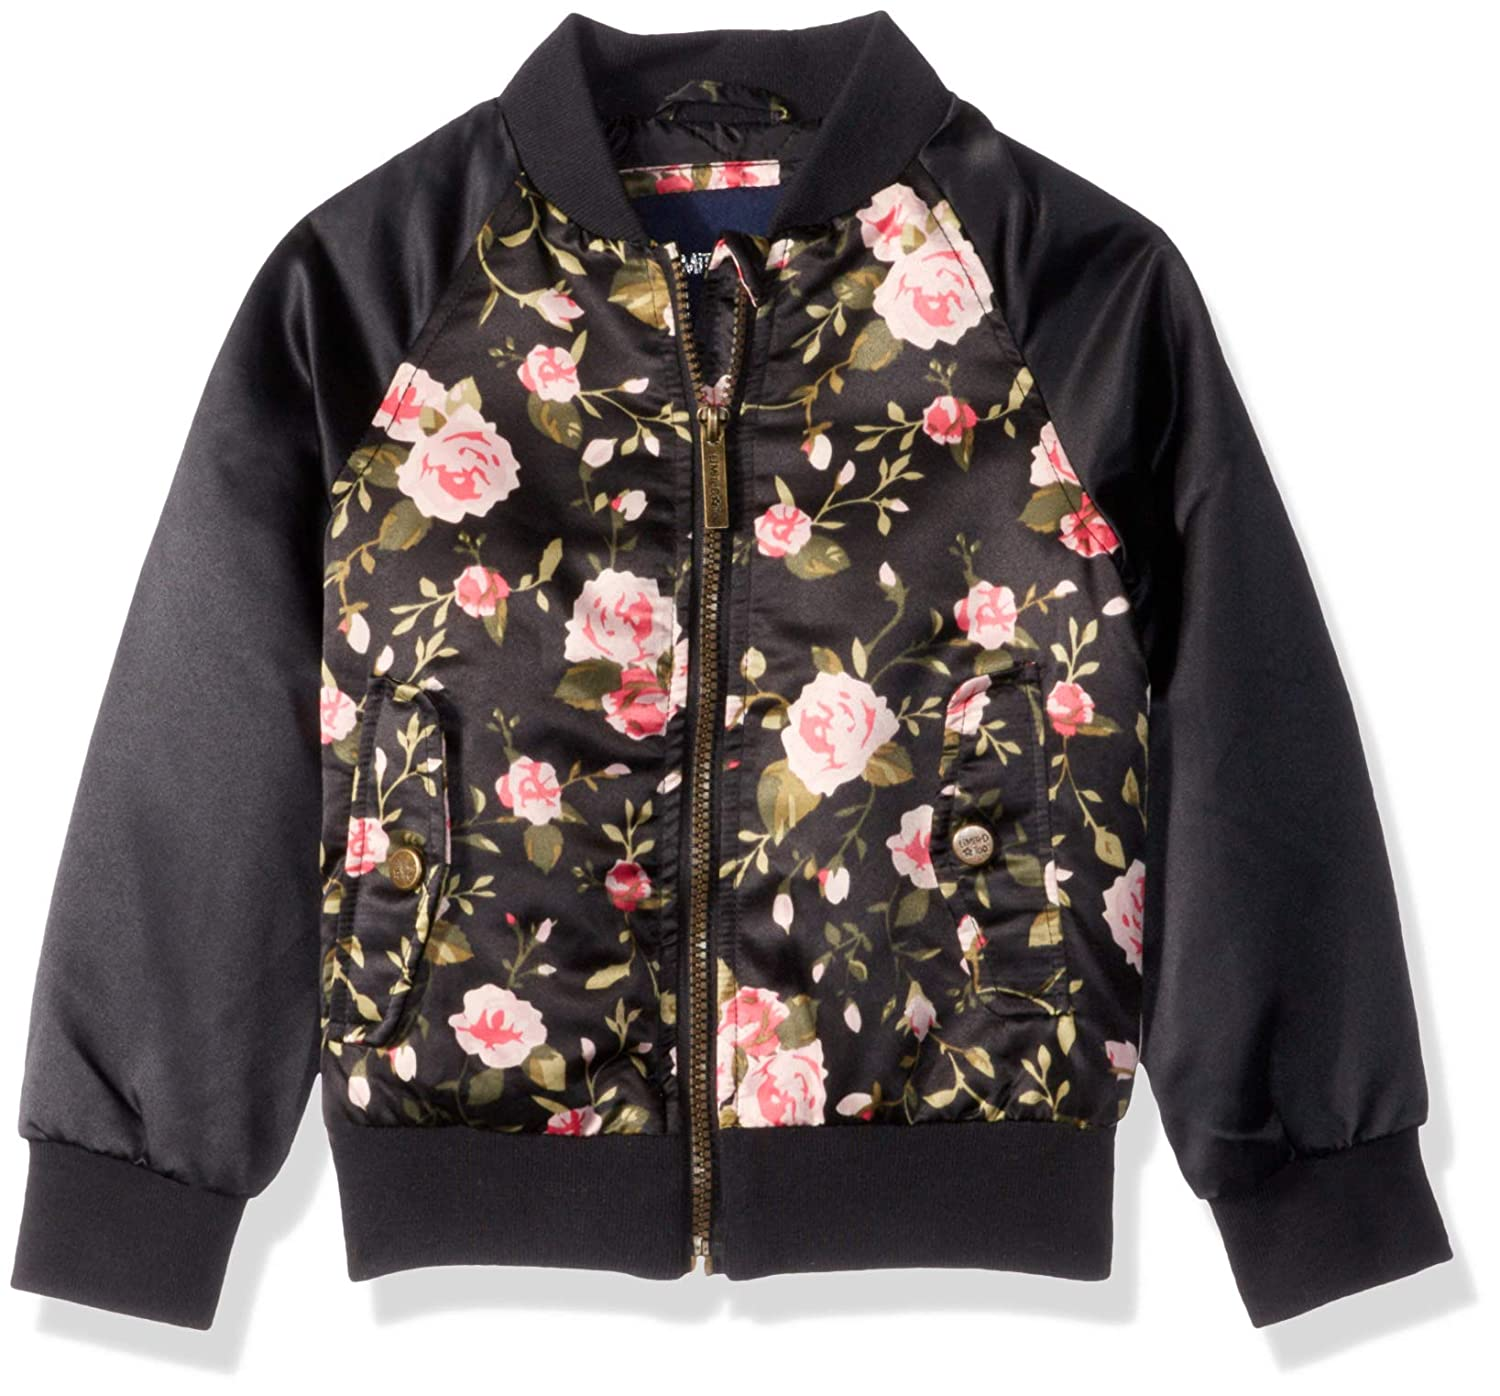 67d78685d Amazon.com: Limited Too Girls' Big Bomber Jacket with Floral Print ...